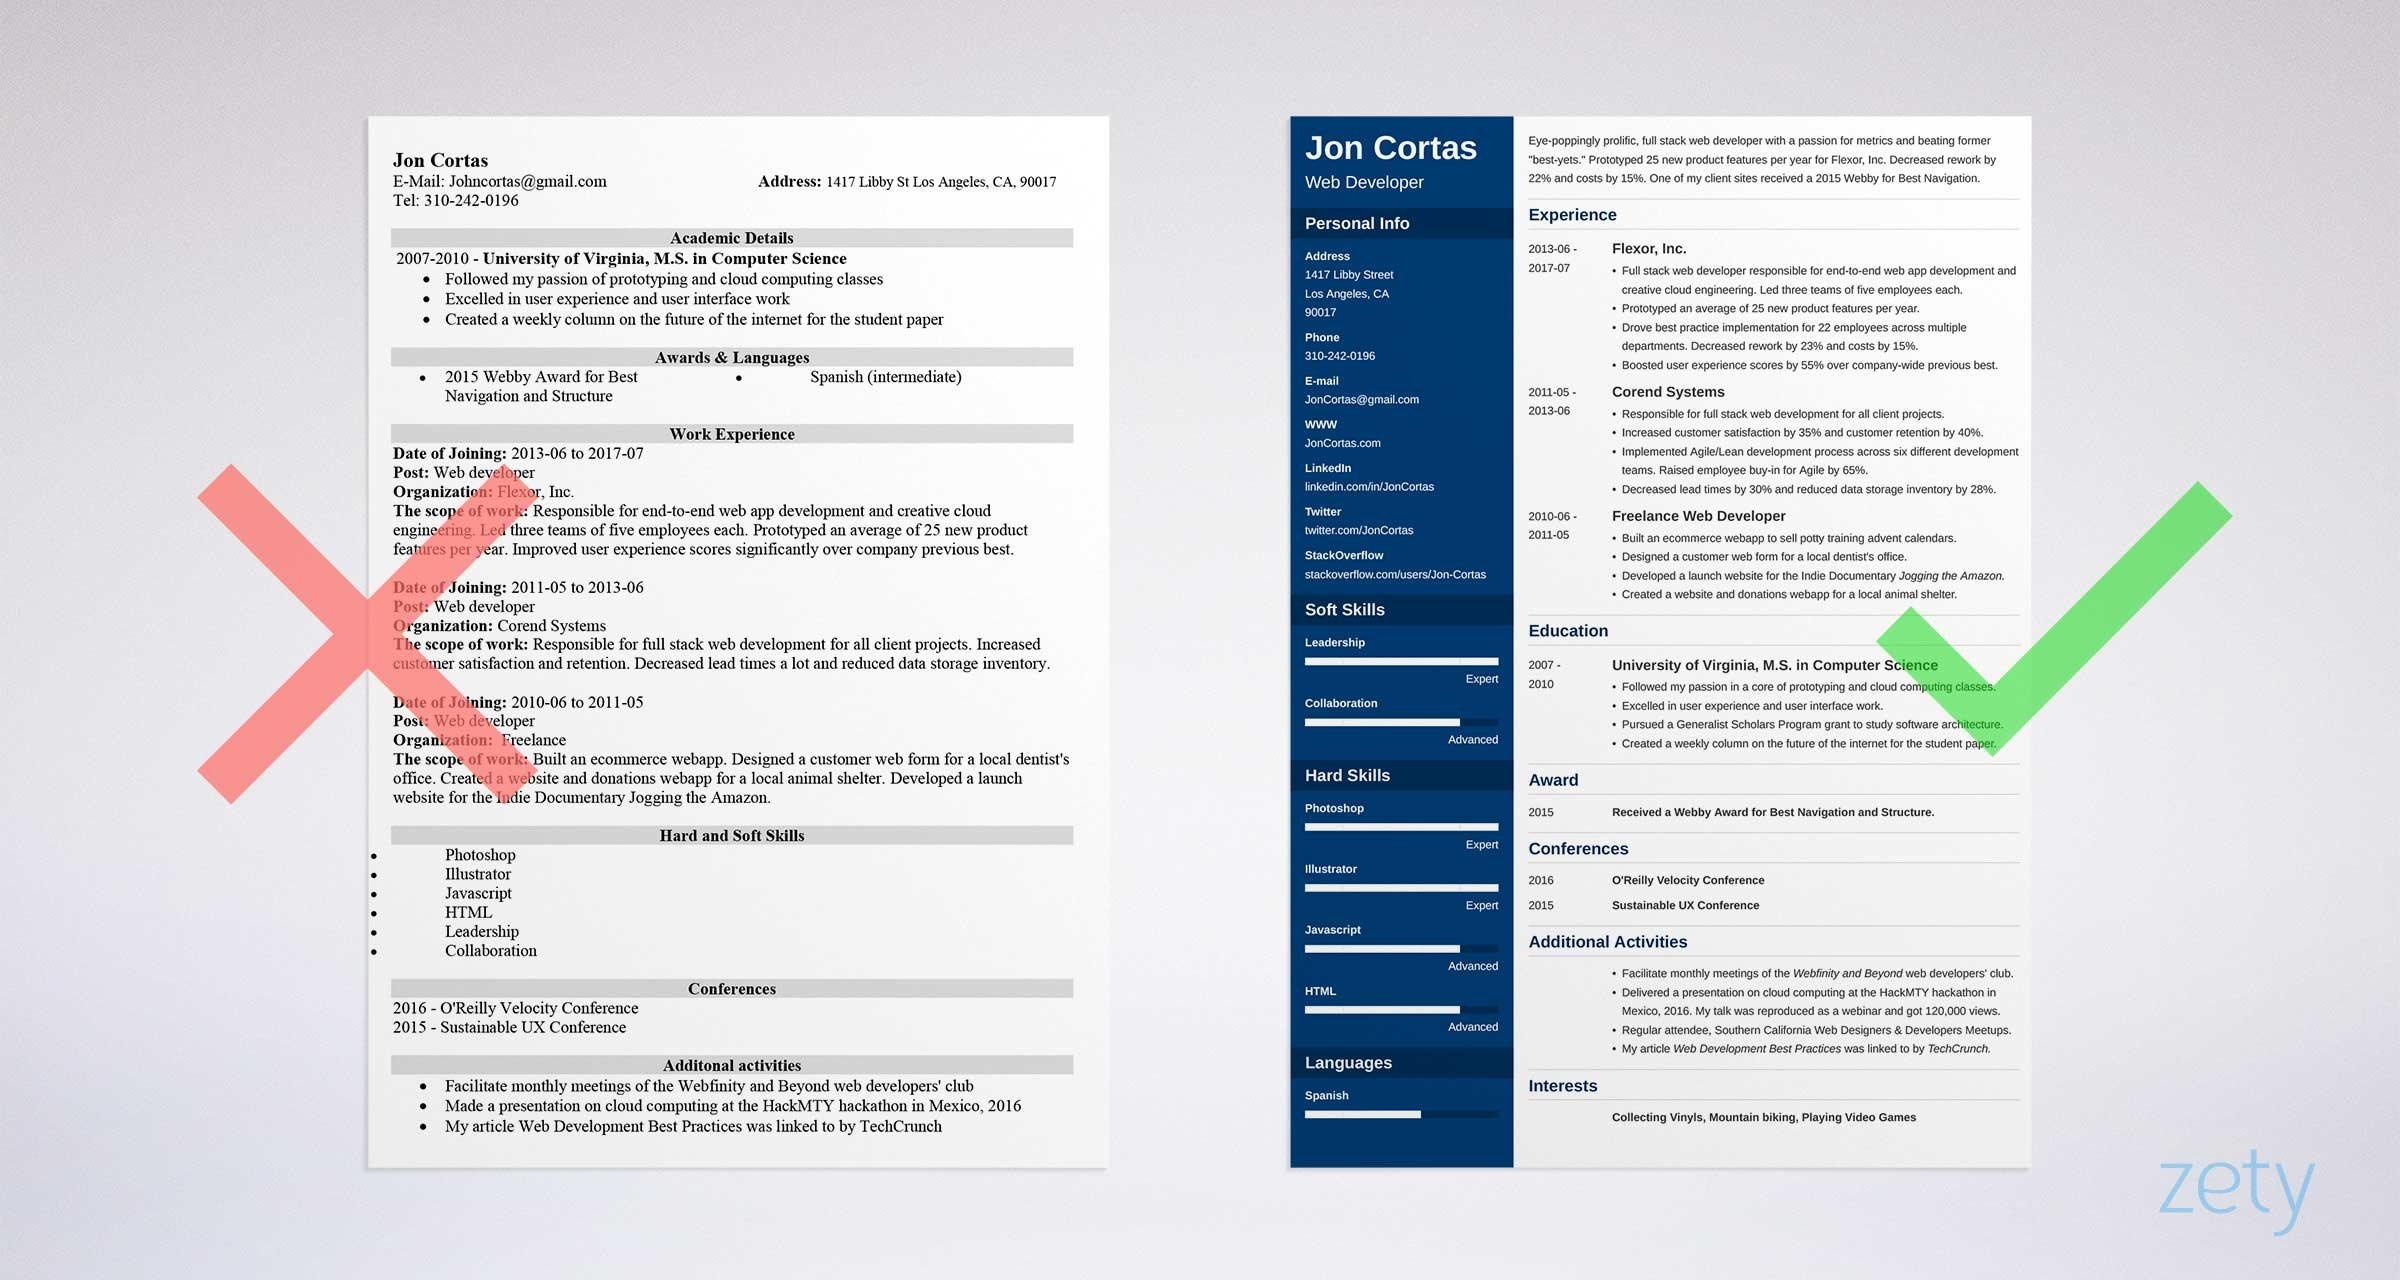 resume Resume Templates In Word resume templates for word free 15 examples download wrong and right comparison